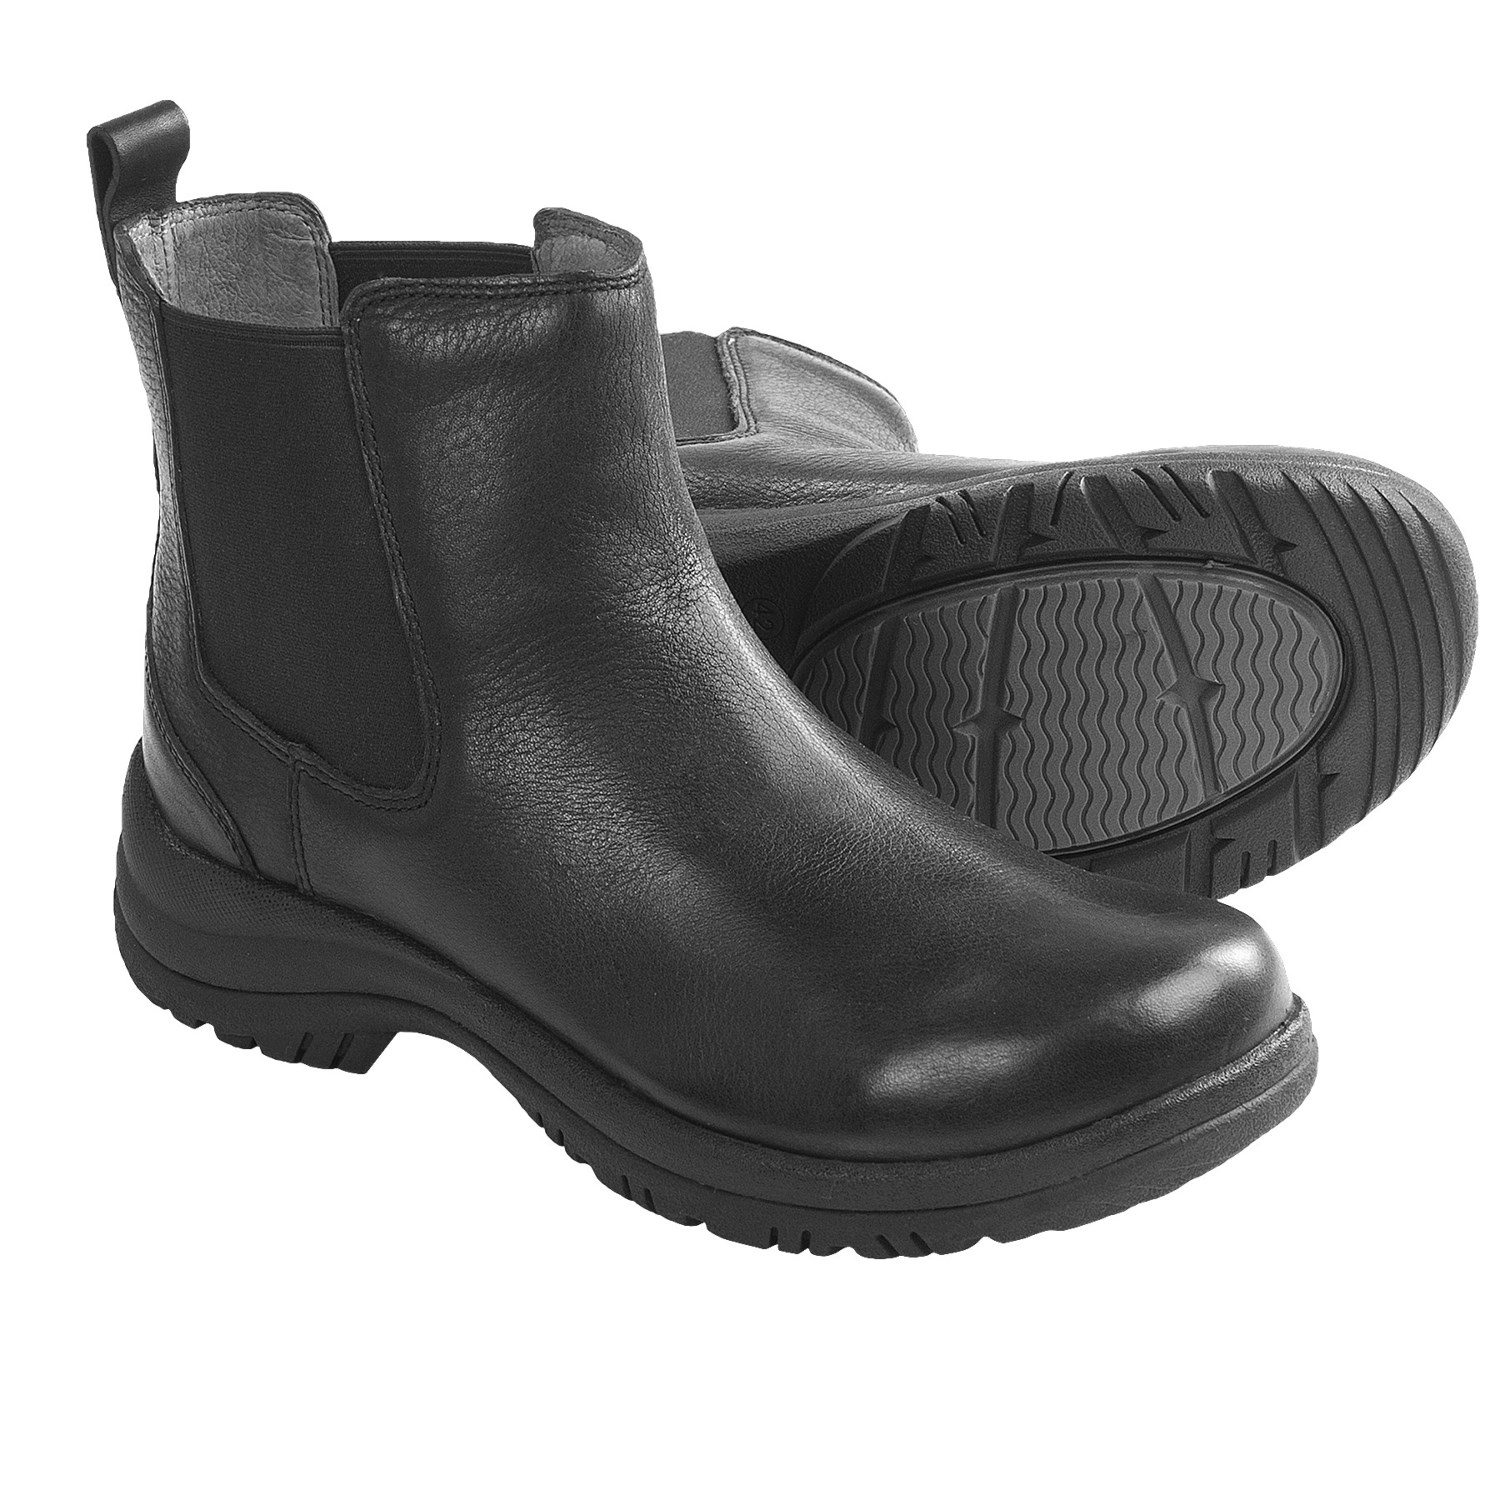 dansko wade boots leather for save 24